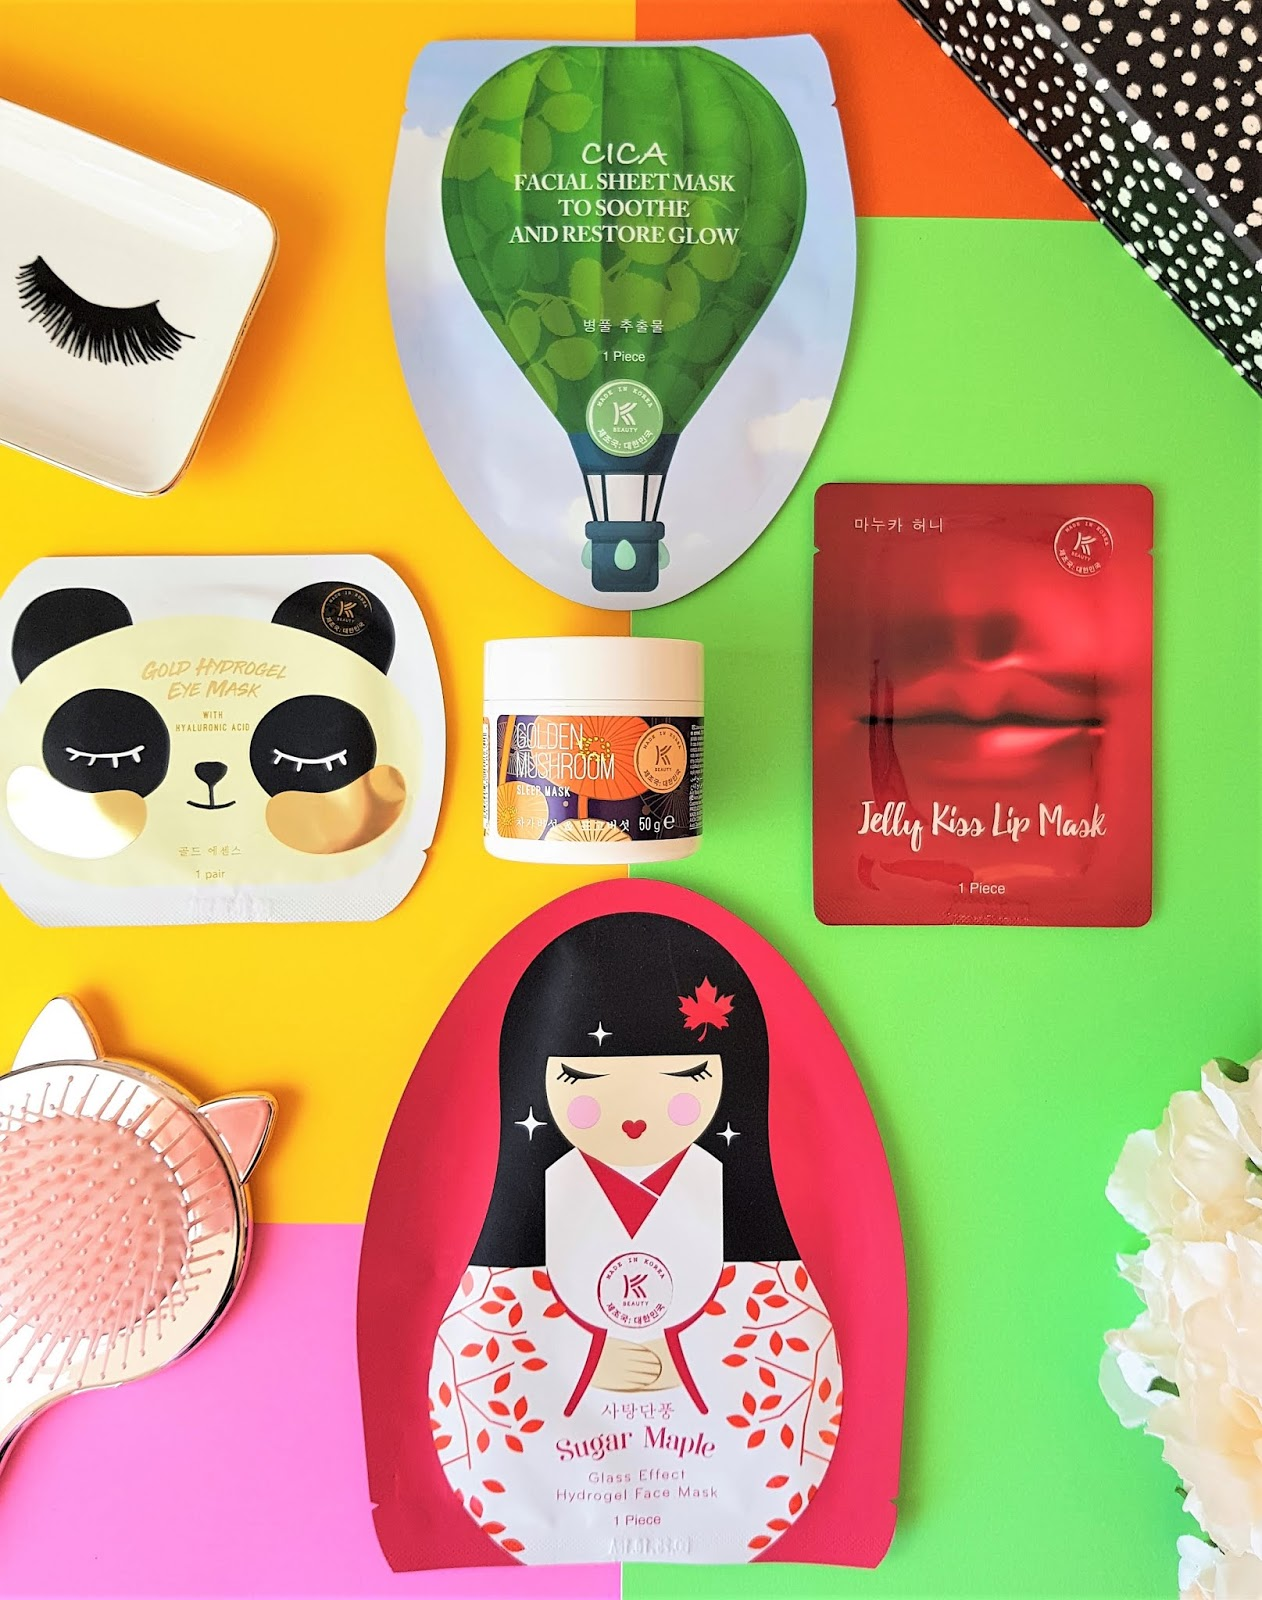 KBEAUTY by AVON Flatlay of Masks from Avons New KBeauty Range